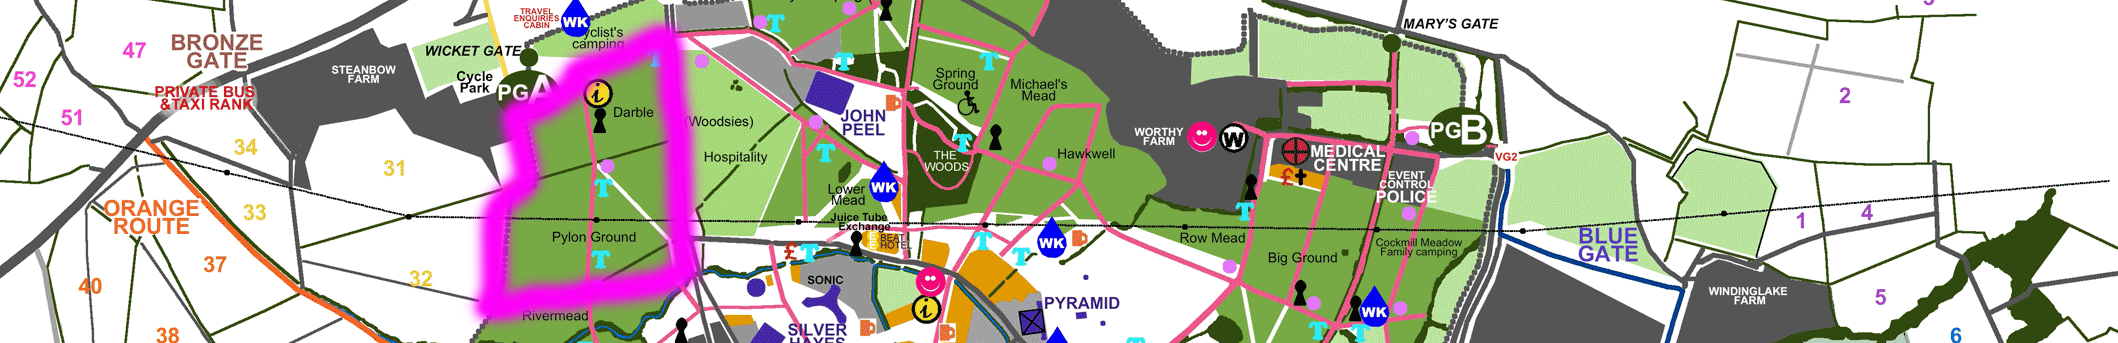 Pylon Ground Darble Glastonbury official map segment camping grounds stages campervan fields